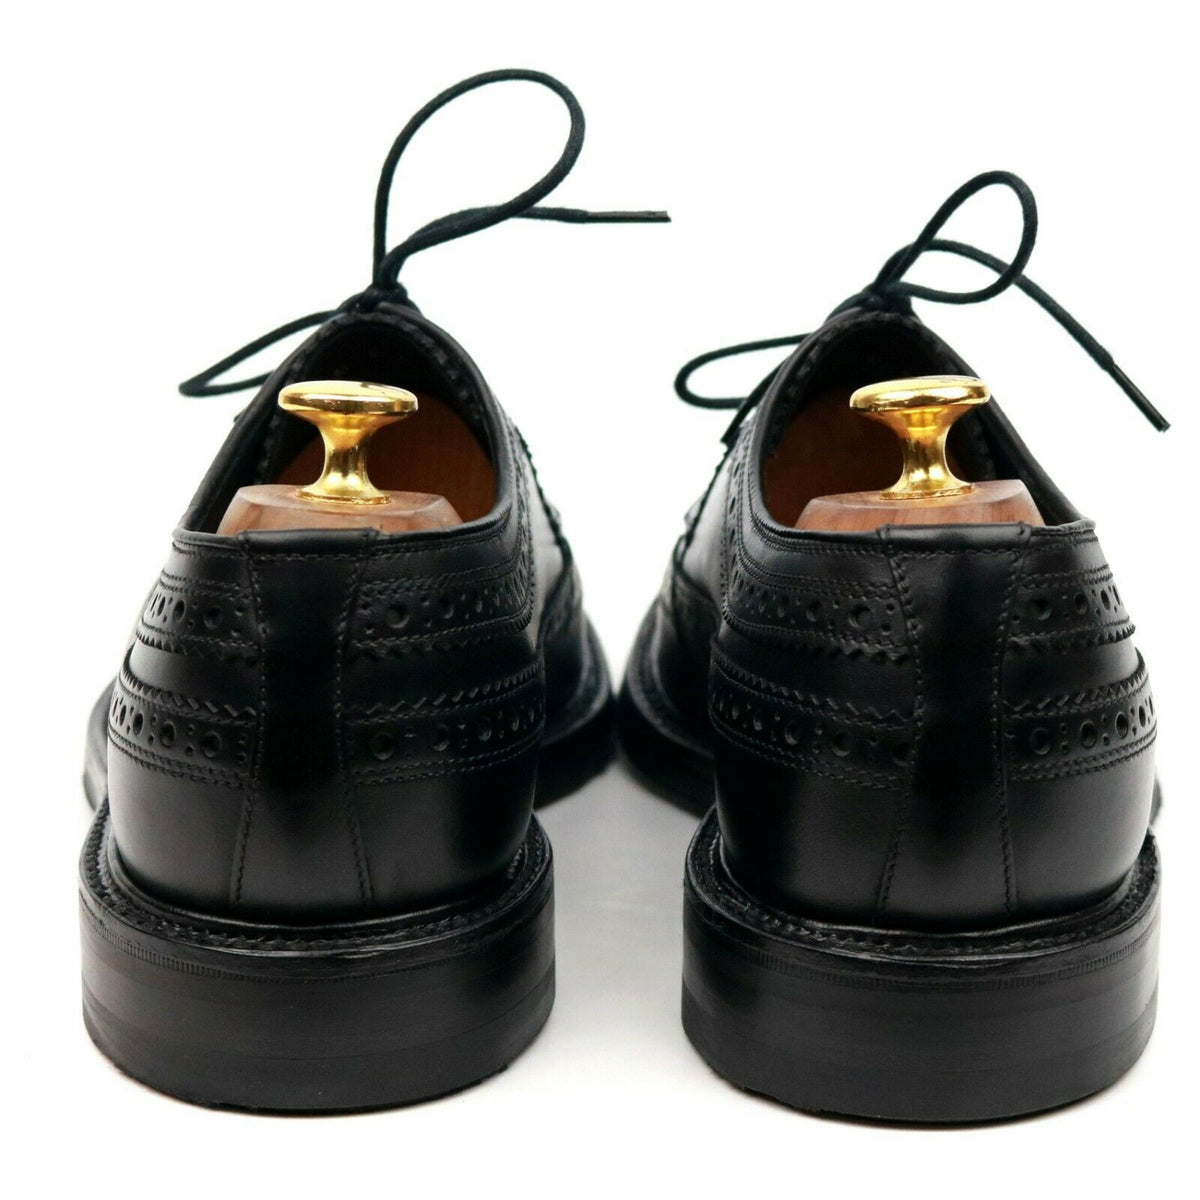 Loake 1880 Legacy 'Birkdale' Black Leather Derby Brogues UK 8 - 10